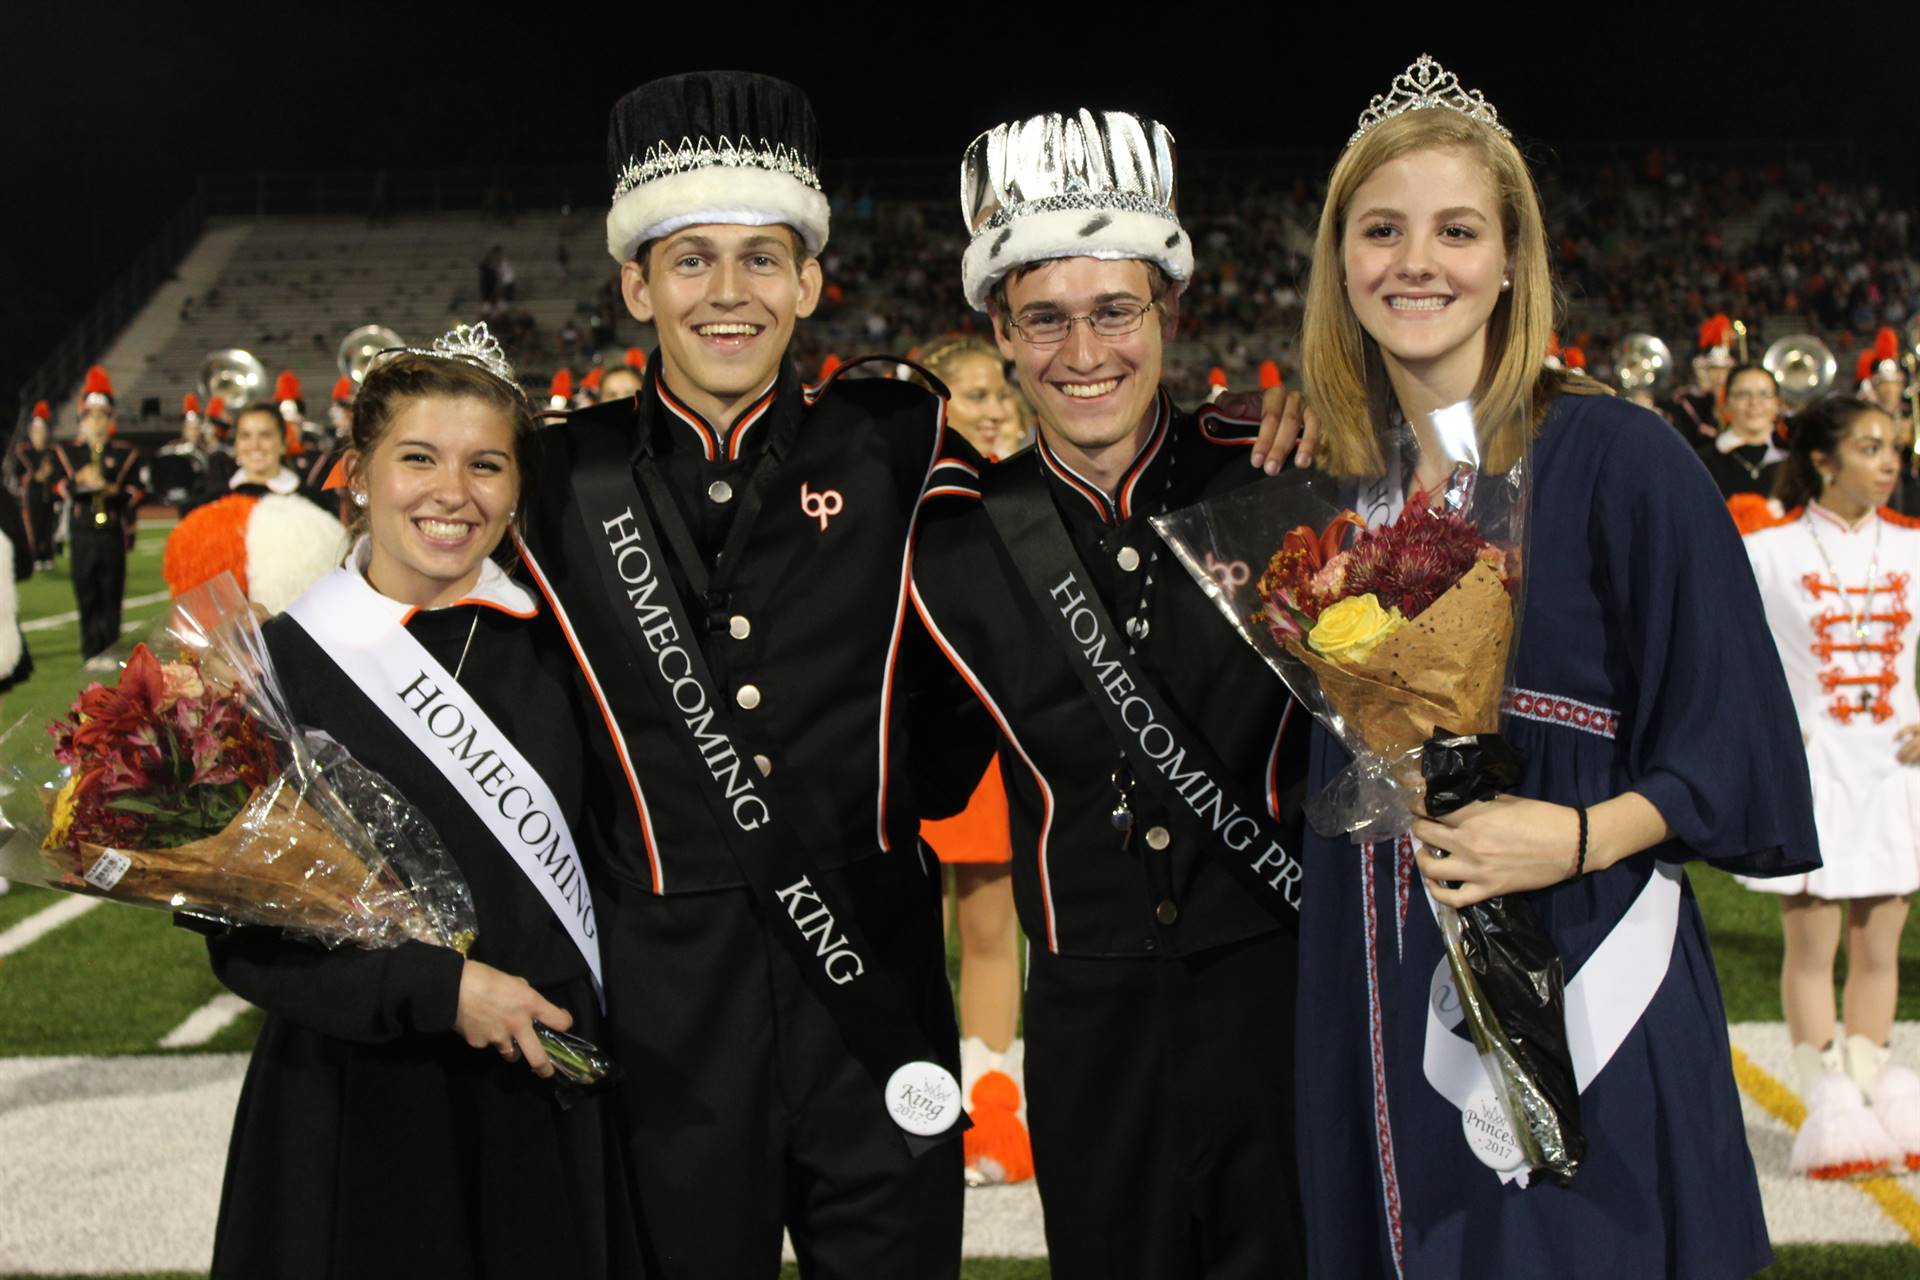 Homecoming Queen, King, Prince and Princess